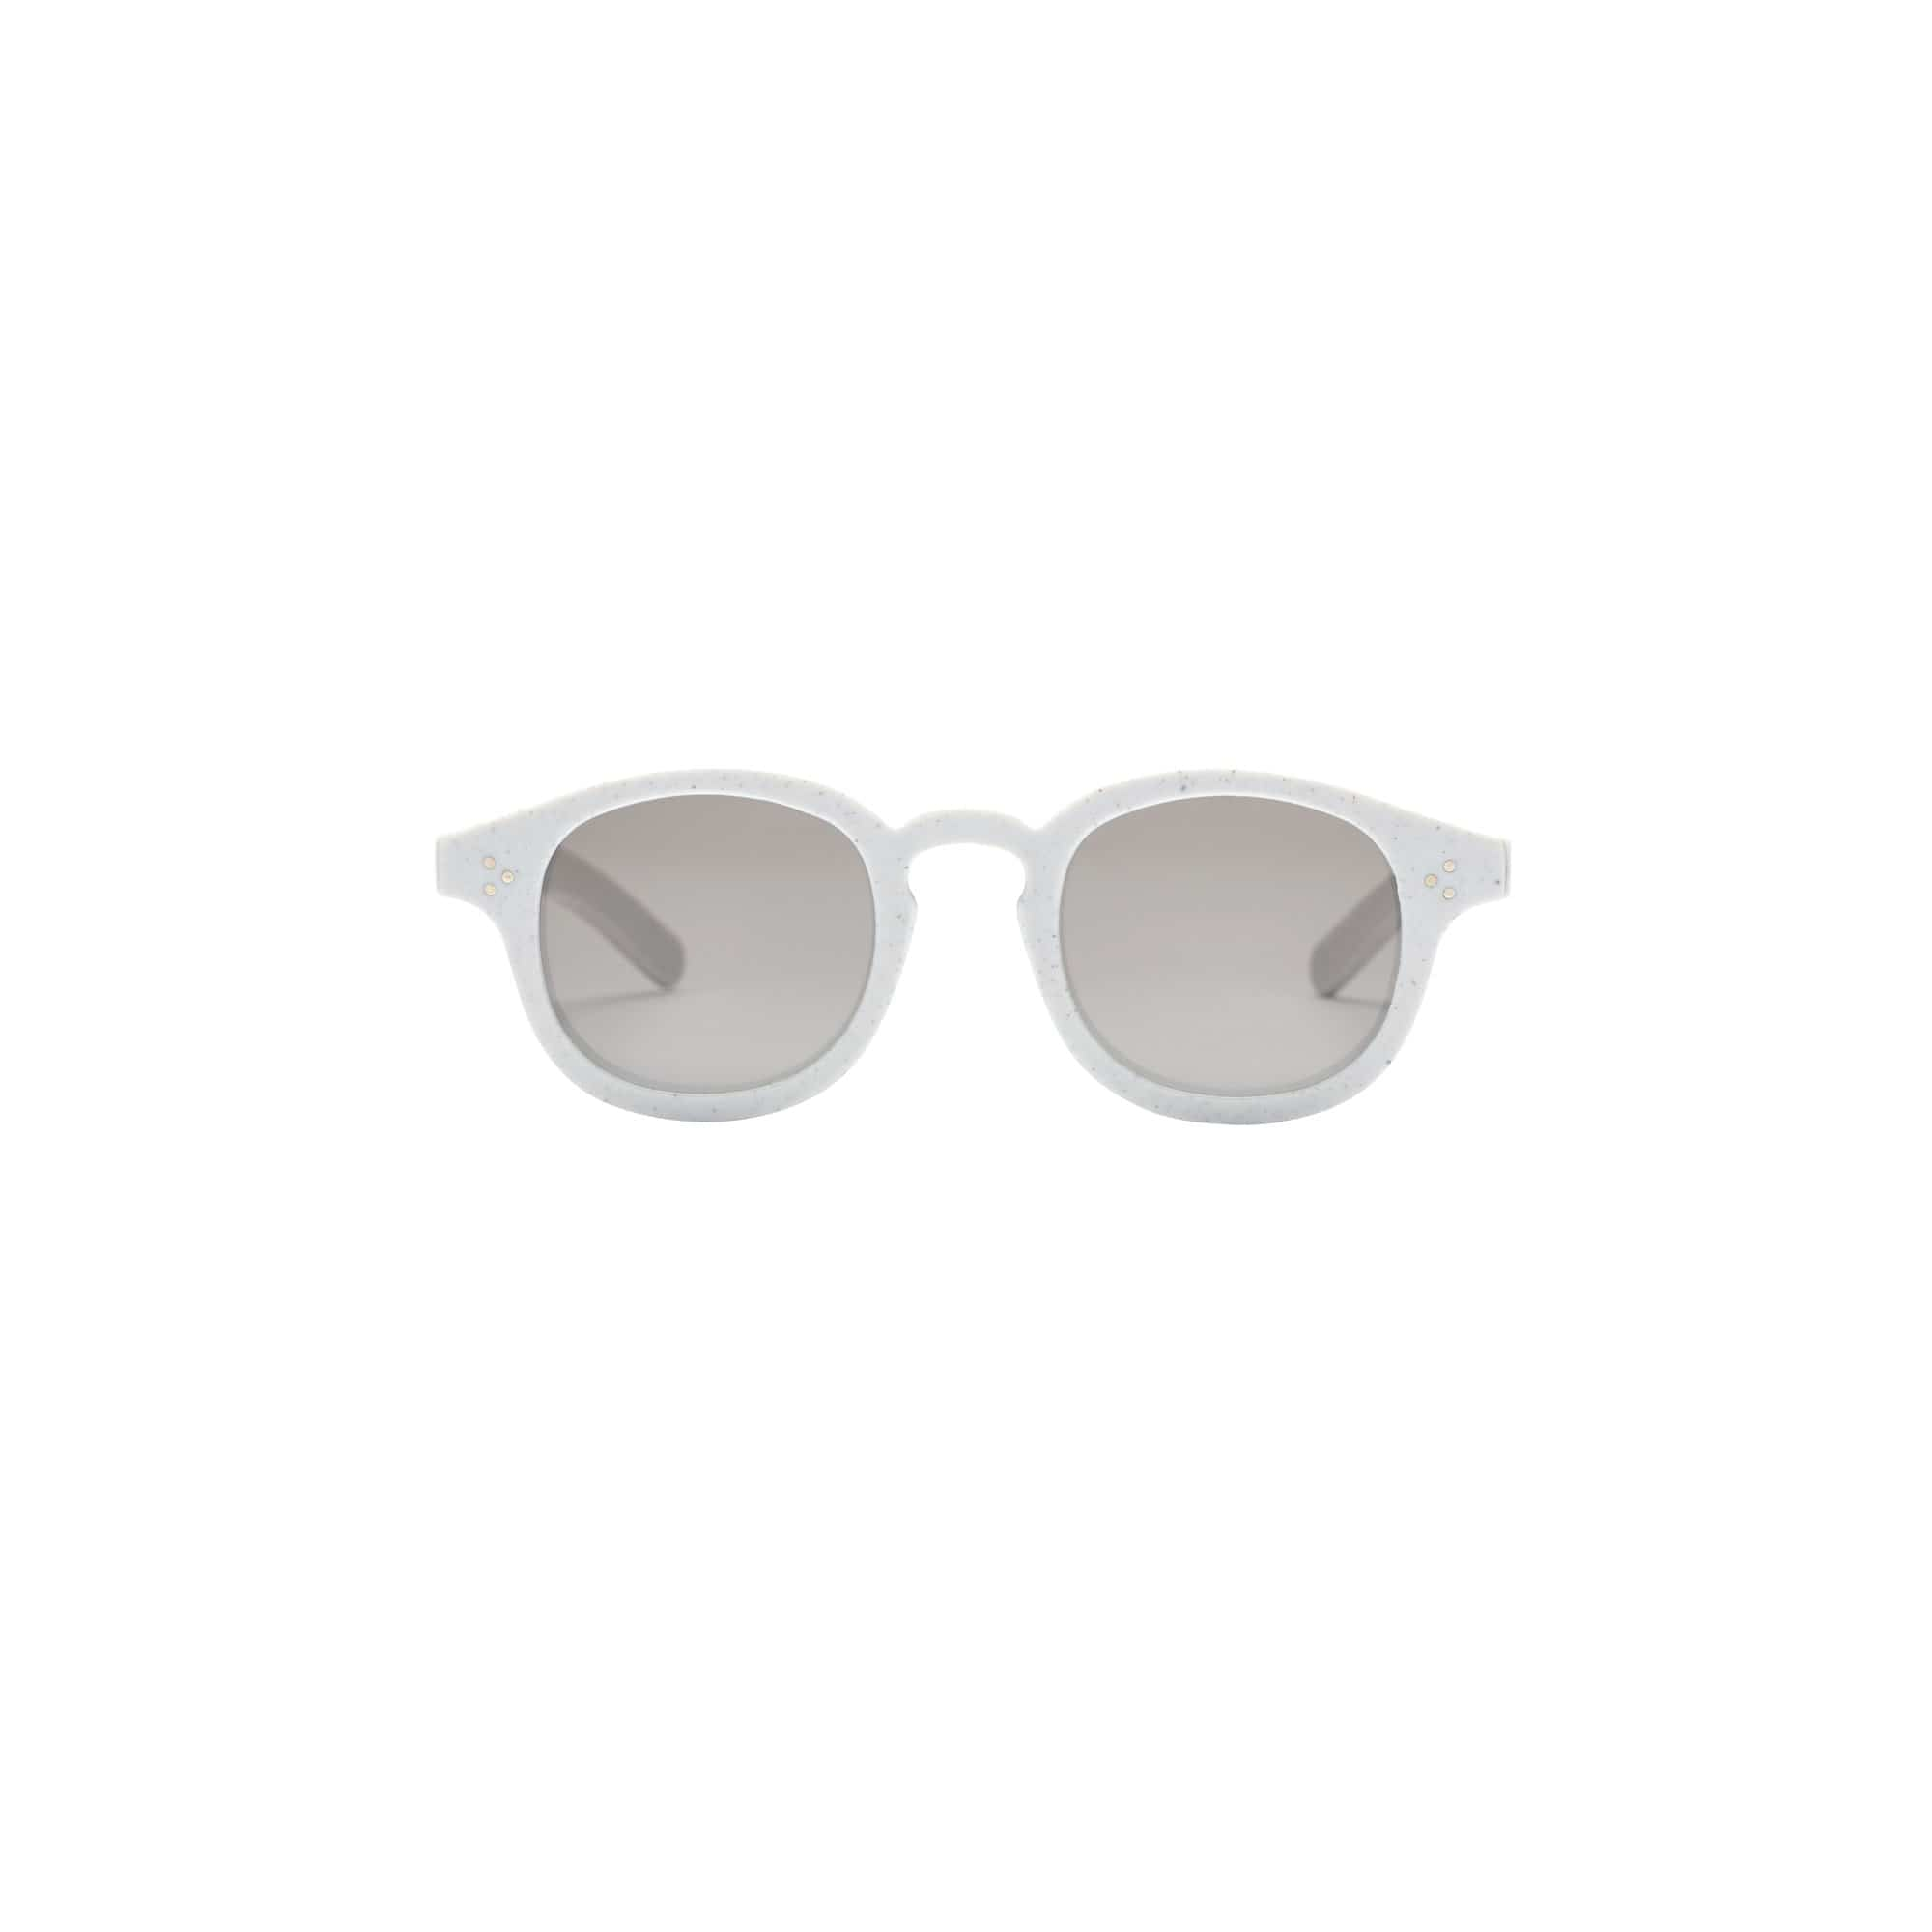 Genusee Sunglasses + Eyewear Non-prescription / Non-polarized / CR39 Roeper Cookies n' Cream + Grey Gradient Sunglasses